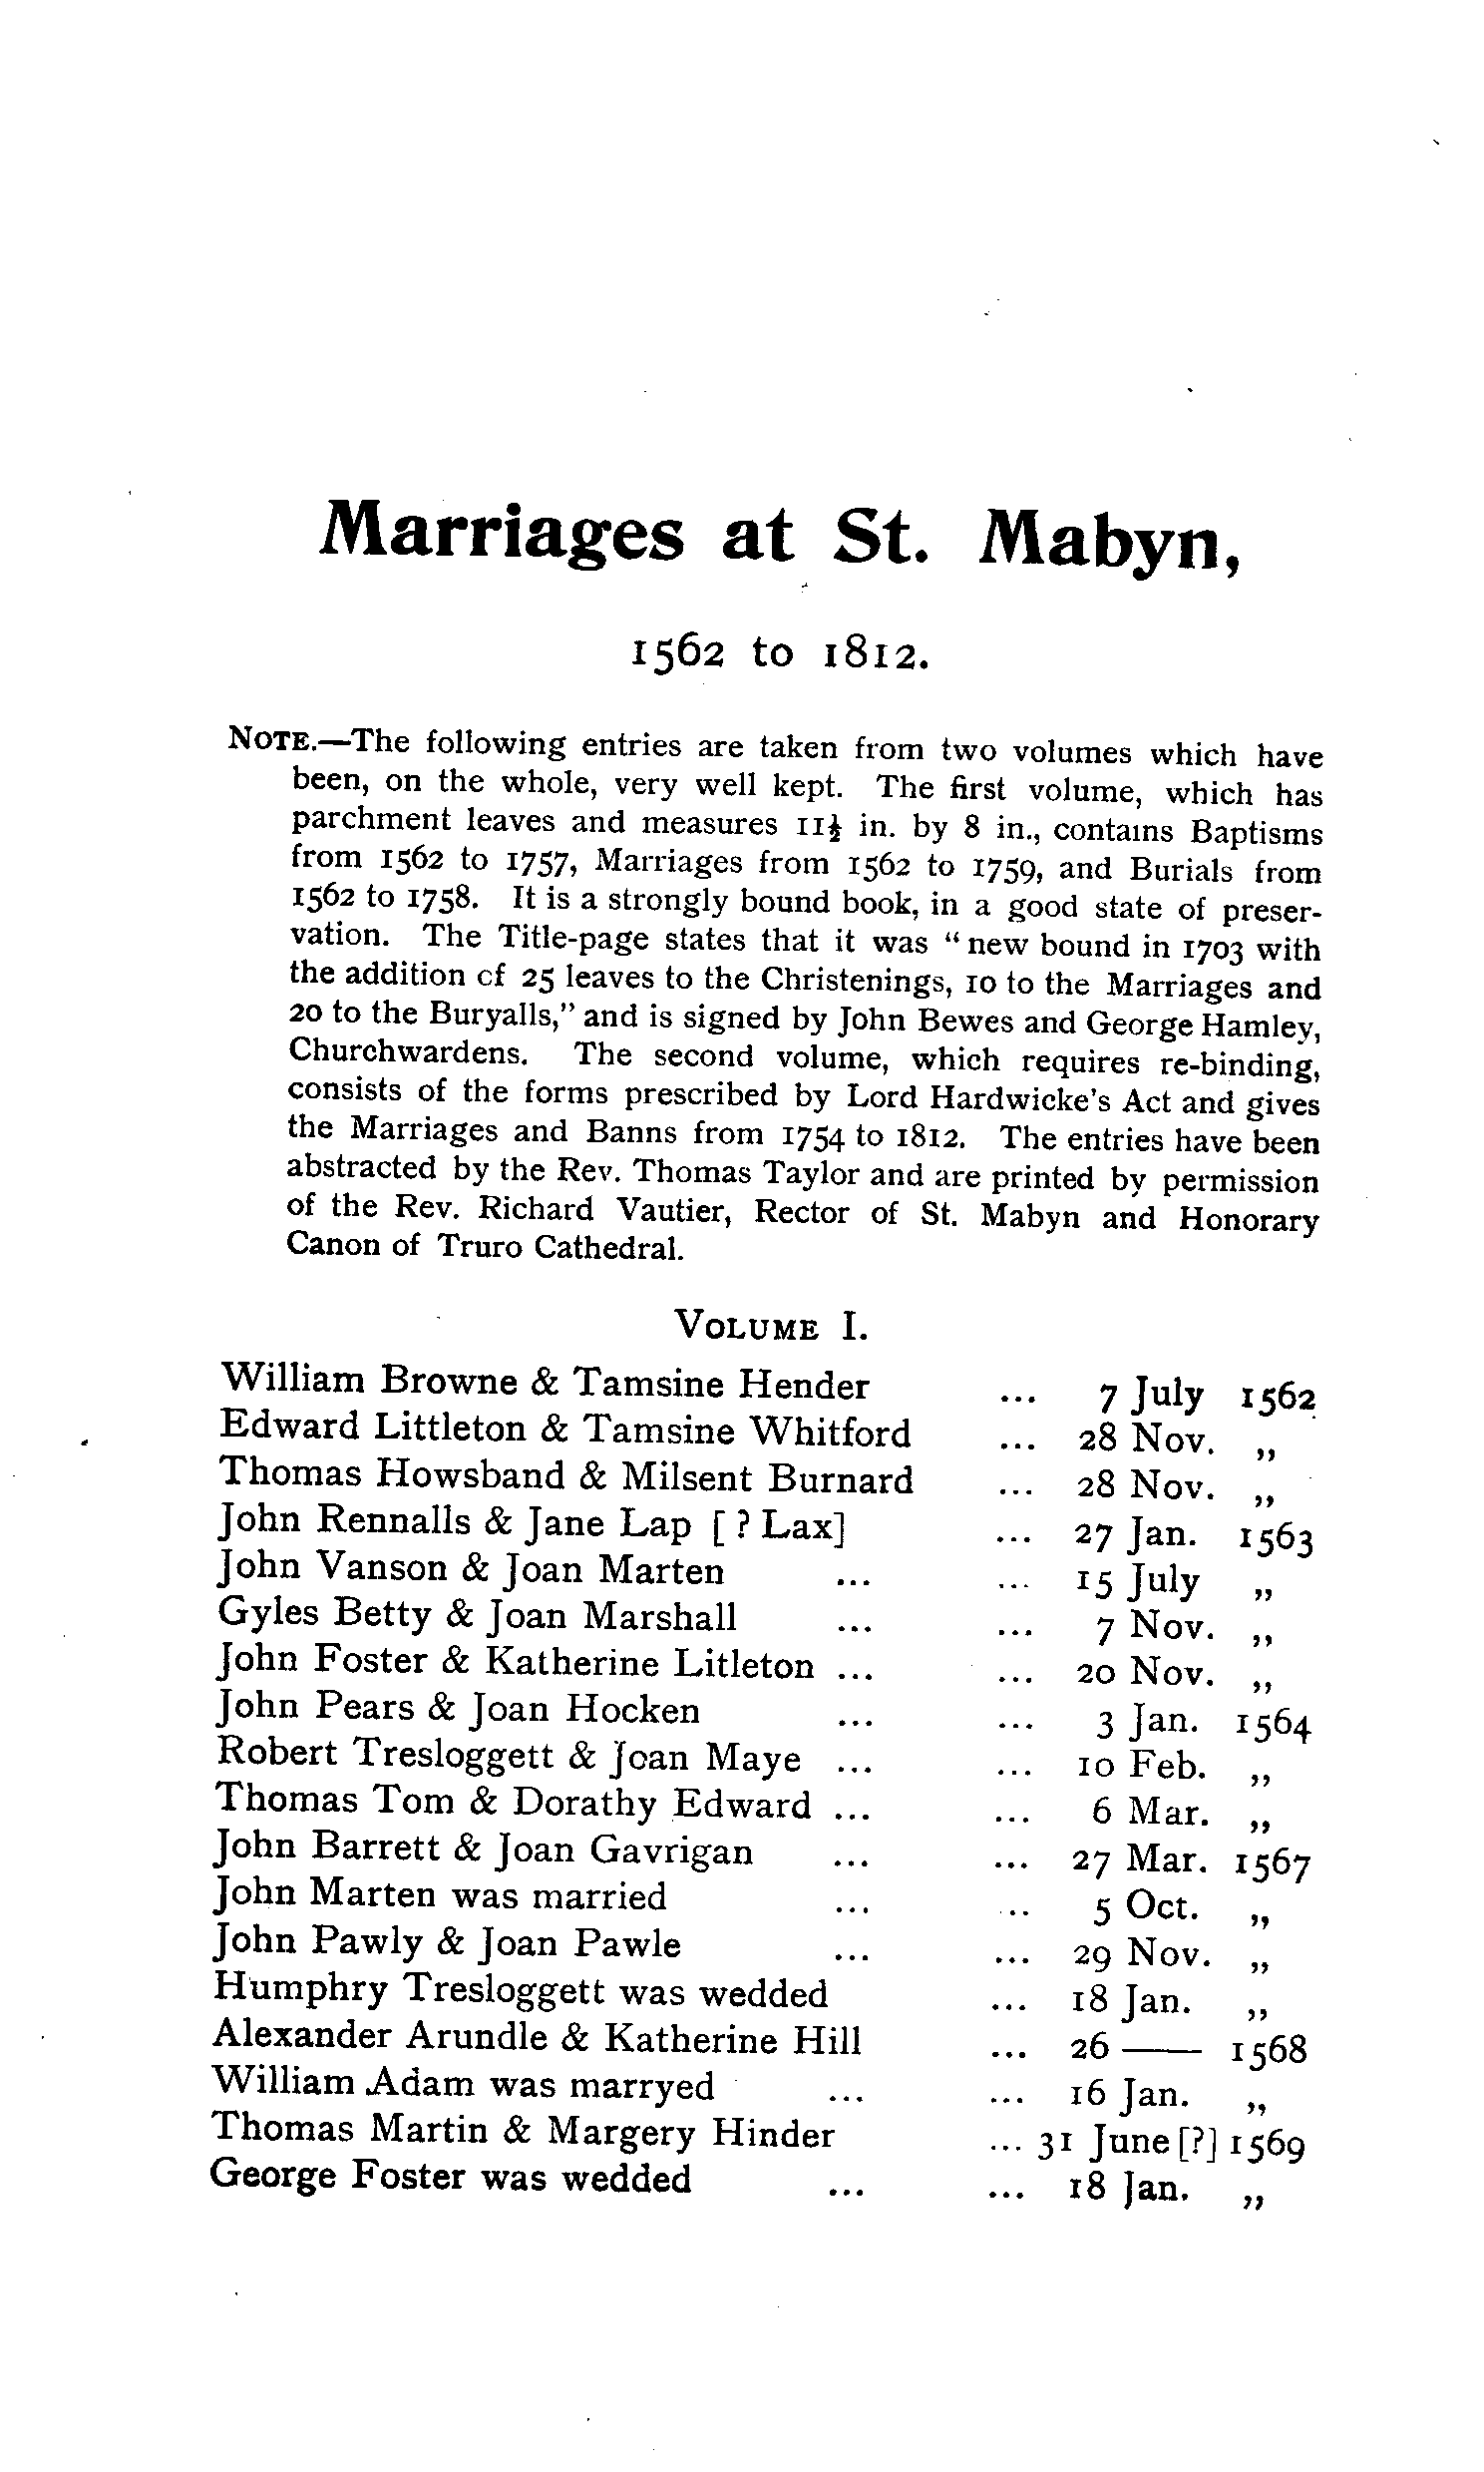 Cornwall Parish Registers - Marriages volume 2 page 69 - click to open larger version in a new window